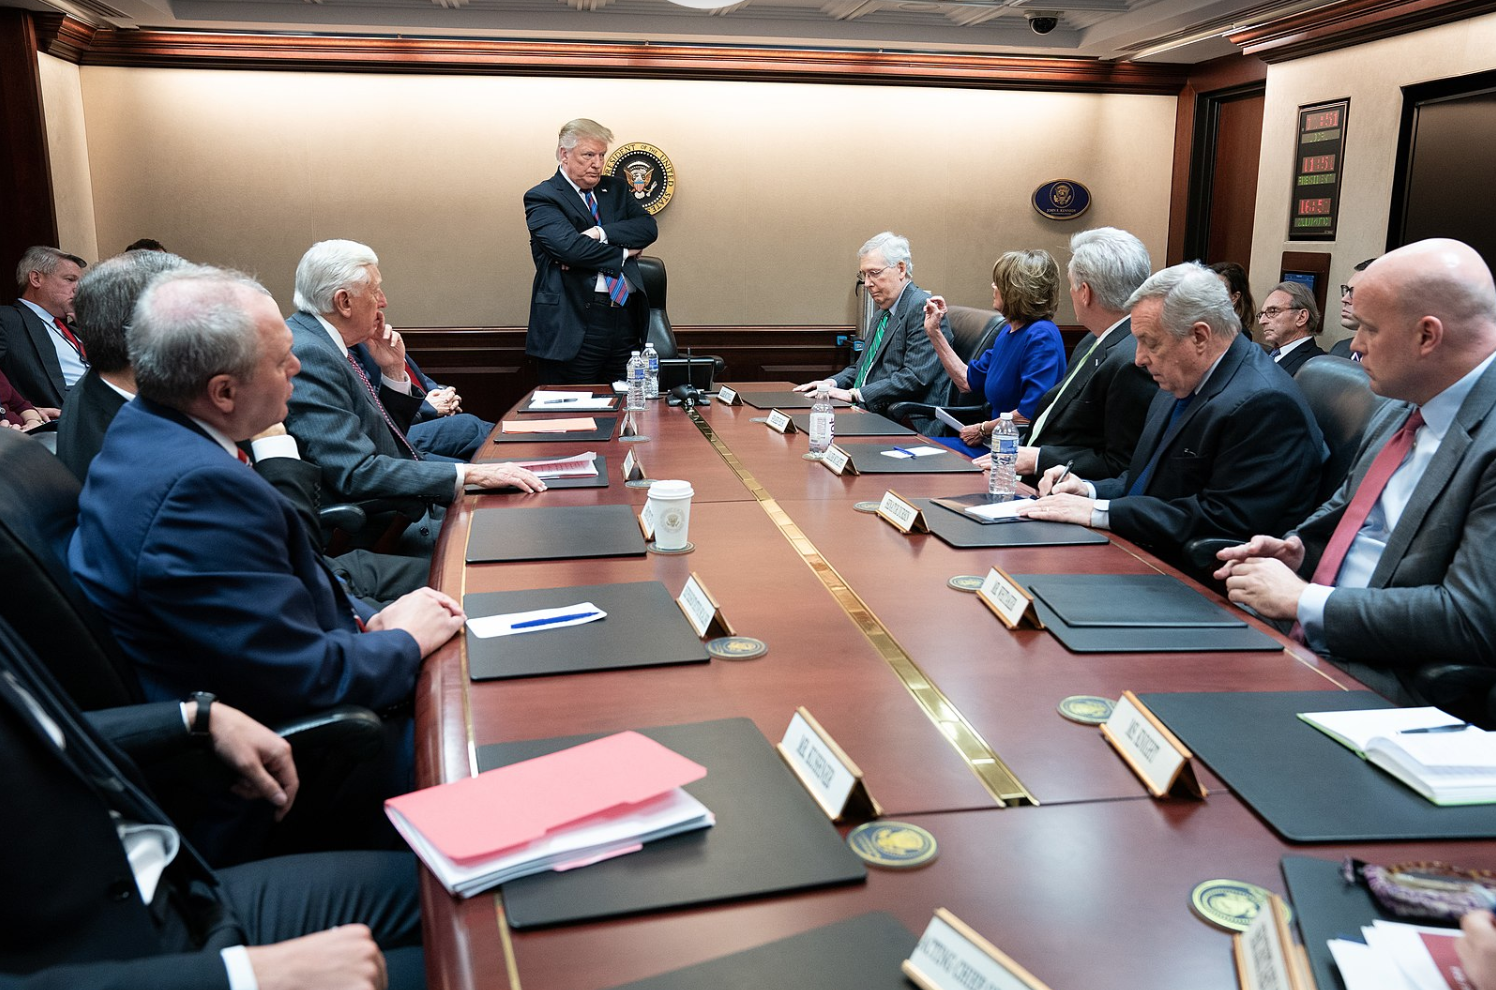 President Trump meeting with congressional leaders in January. Photo via Wikimedia Commons under Creative Commons License.